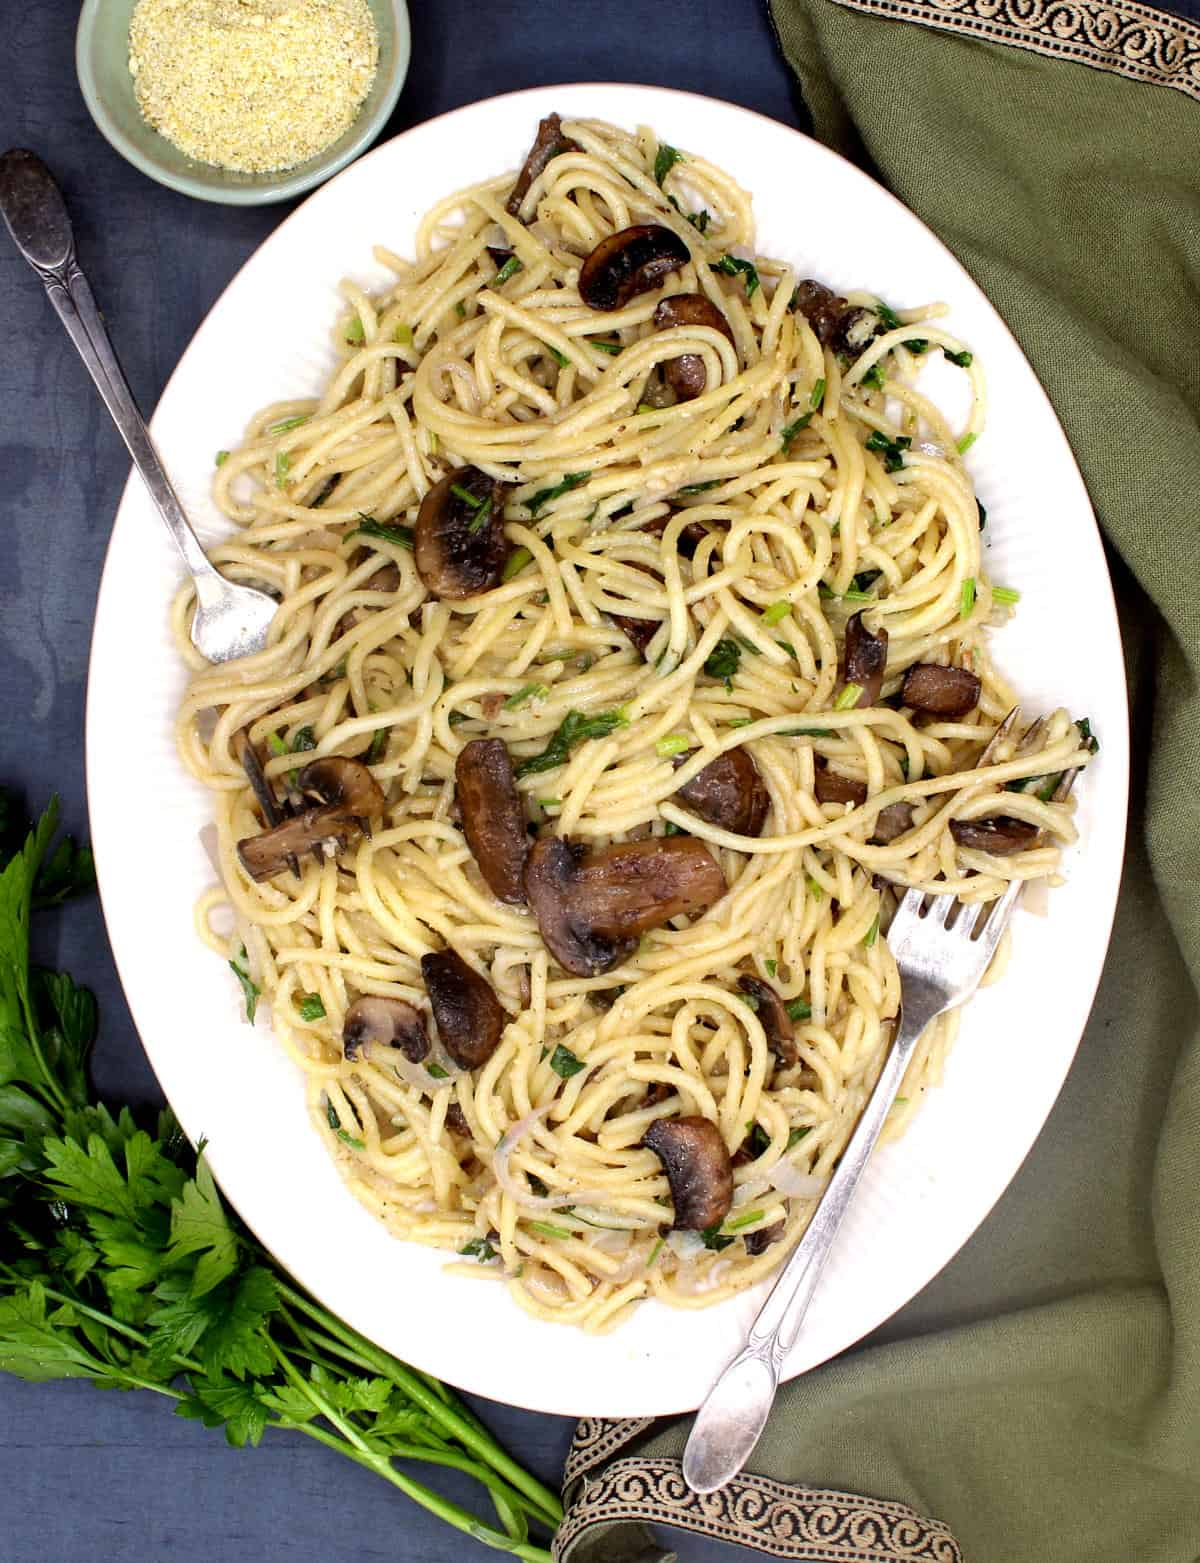 Overhead photo of vegan mushroom pasta with vegan parmesan and parsley and a green napkin on the side.